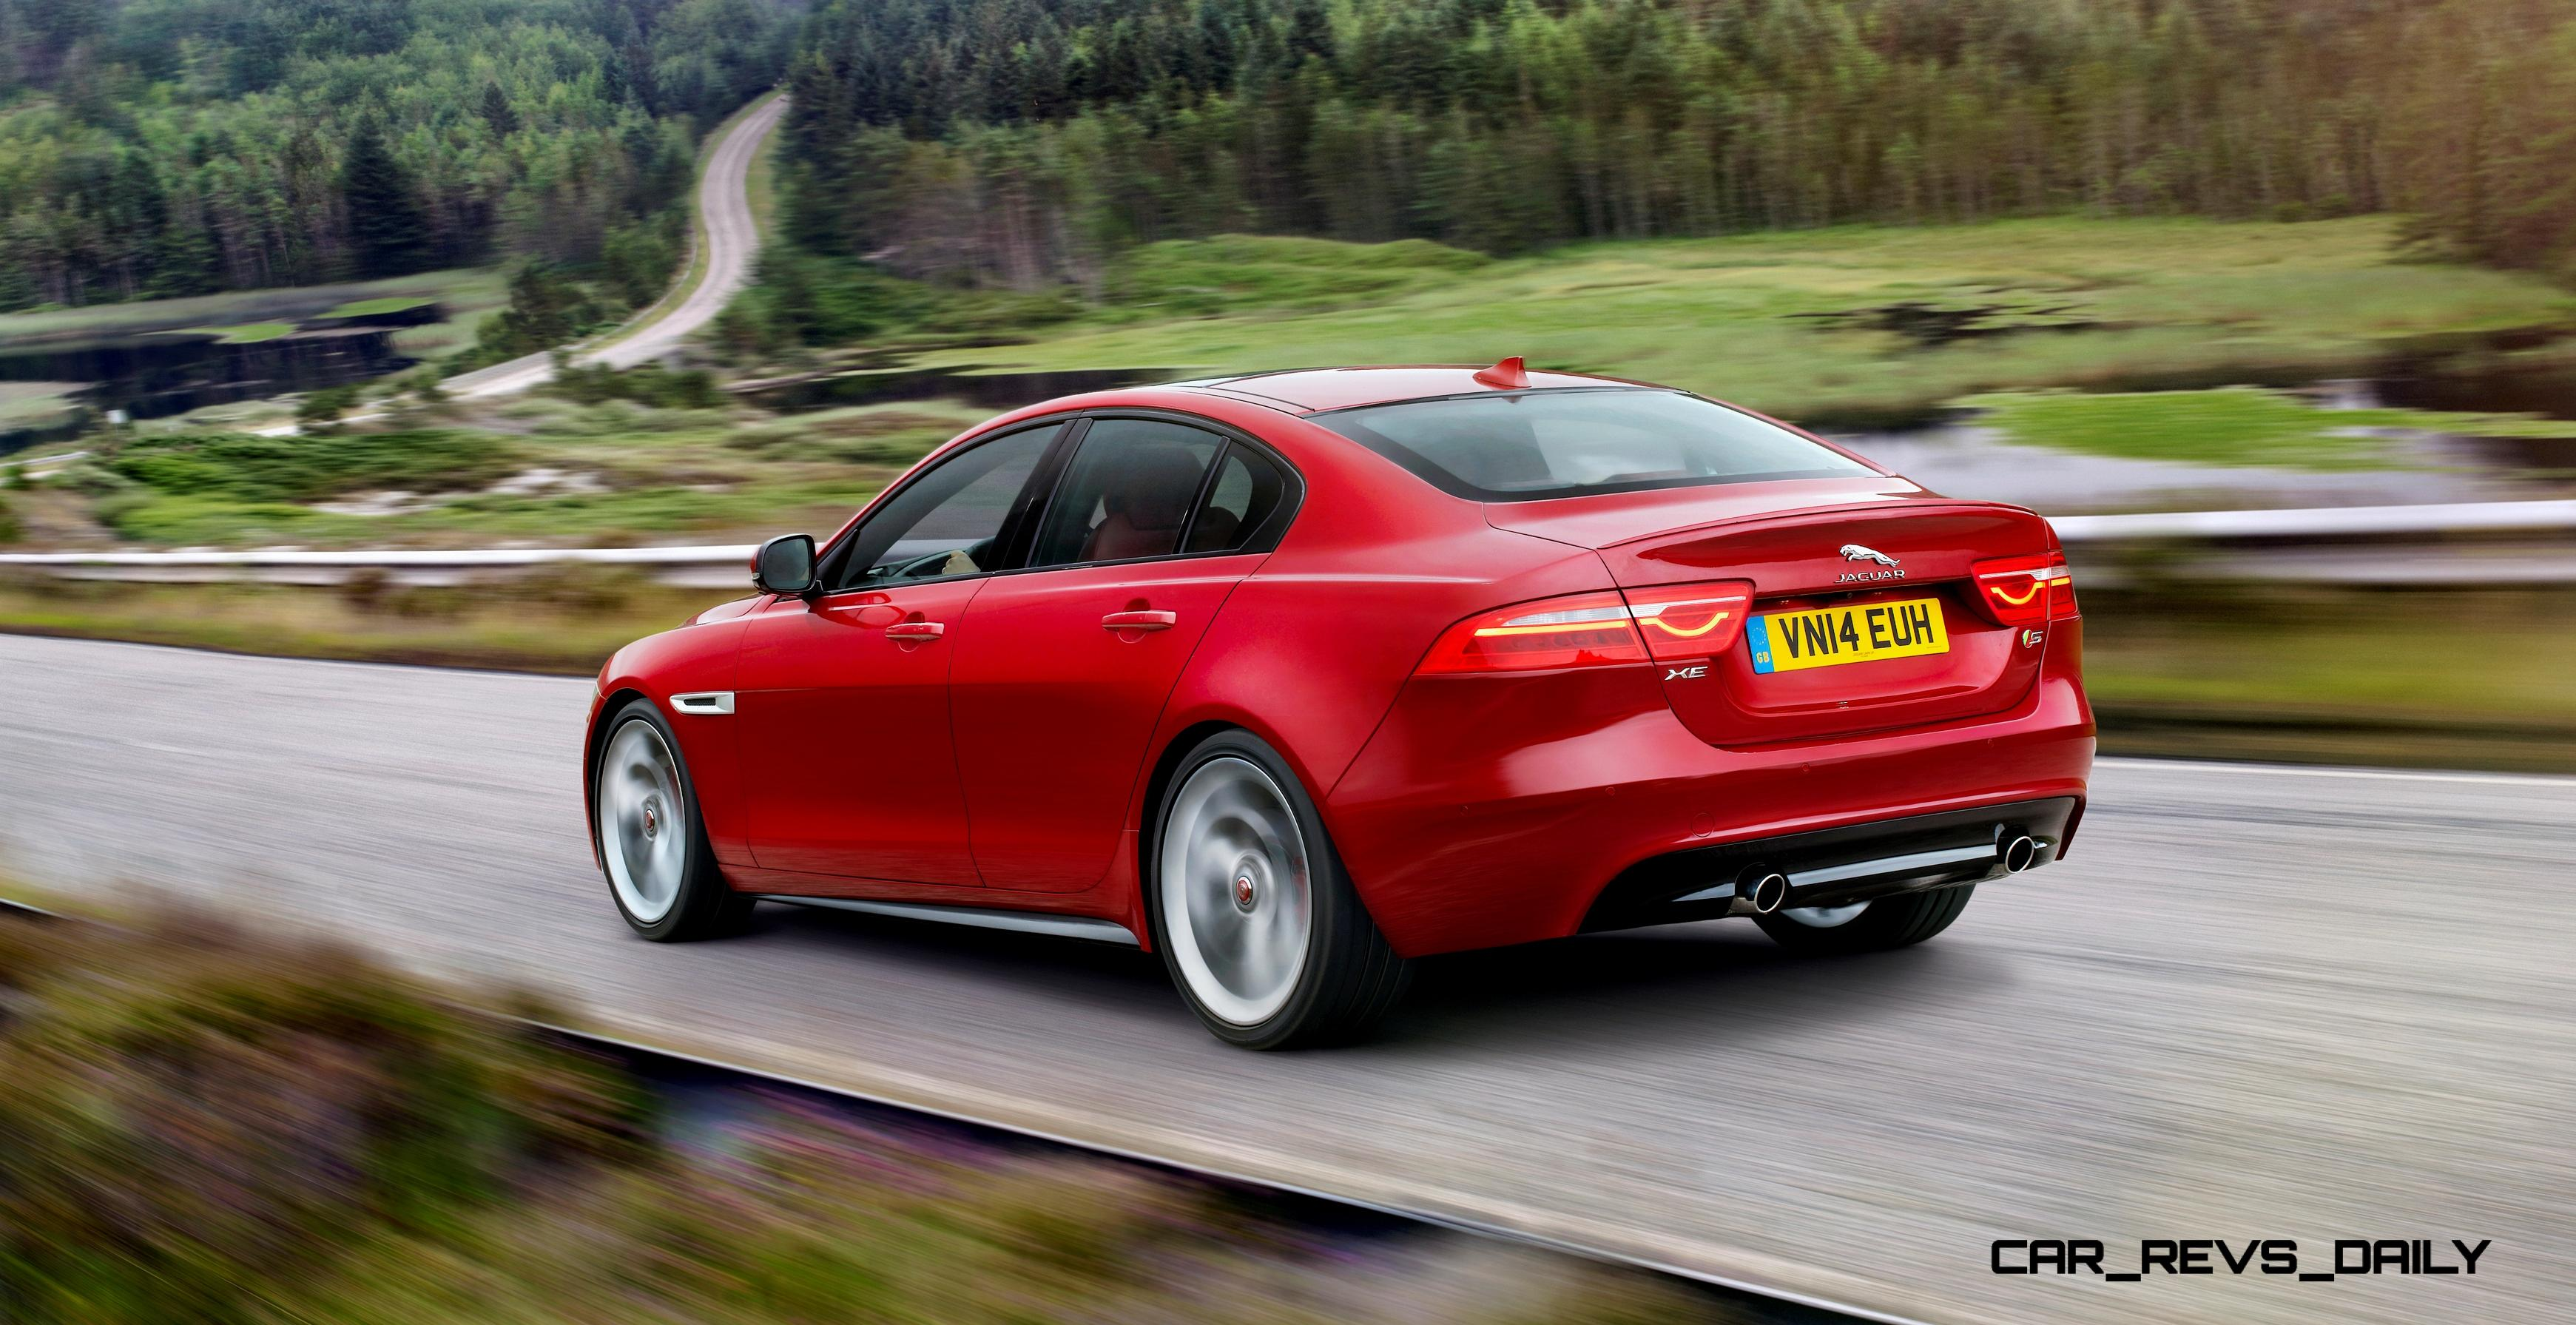 2016 jaguar xe makes london debut with 340hp and rear drive dynamics. Black Bedroom Furniture Sets. Home Design Ideas